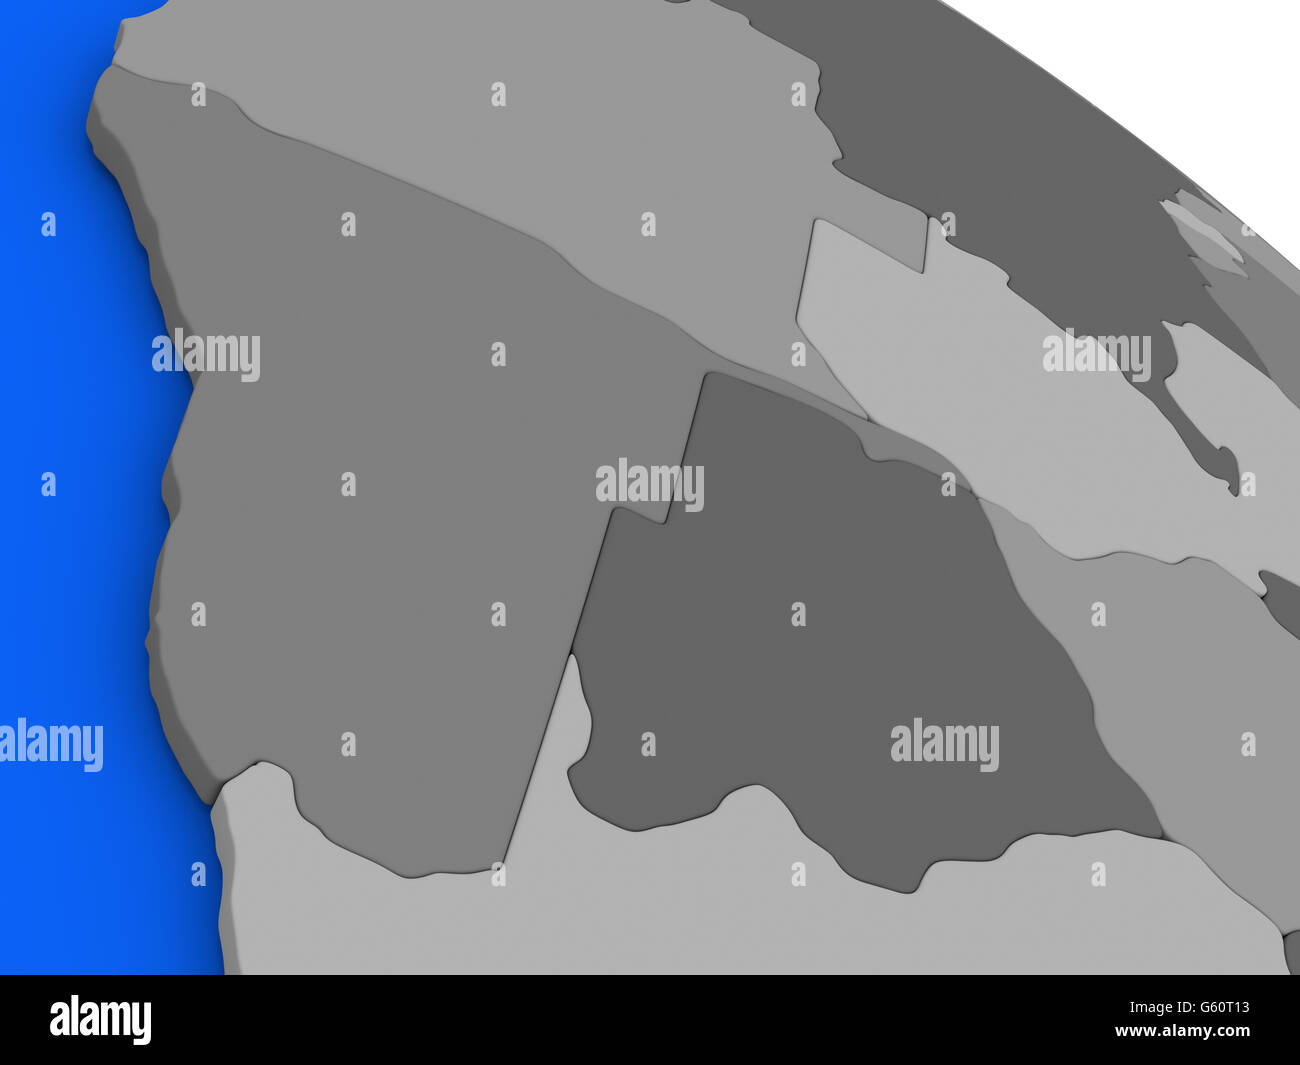 Map of namibia and botswana on 3d model of earth with countries in map of namibia and botswana on 3d model of earth with countries in various shades of grey and blue oceans 3d illustration gumiabroncs Image collections